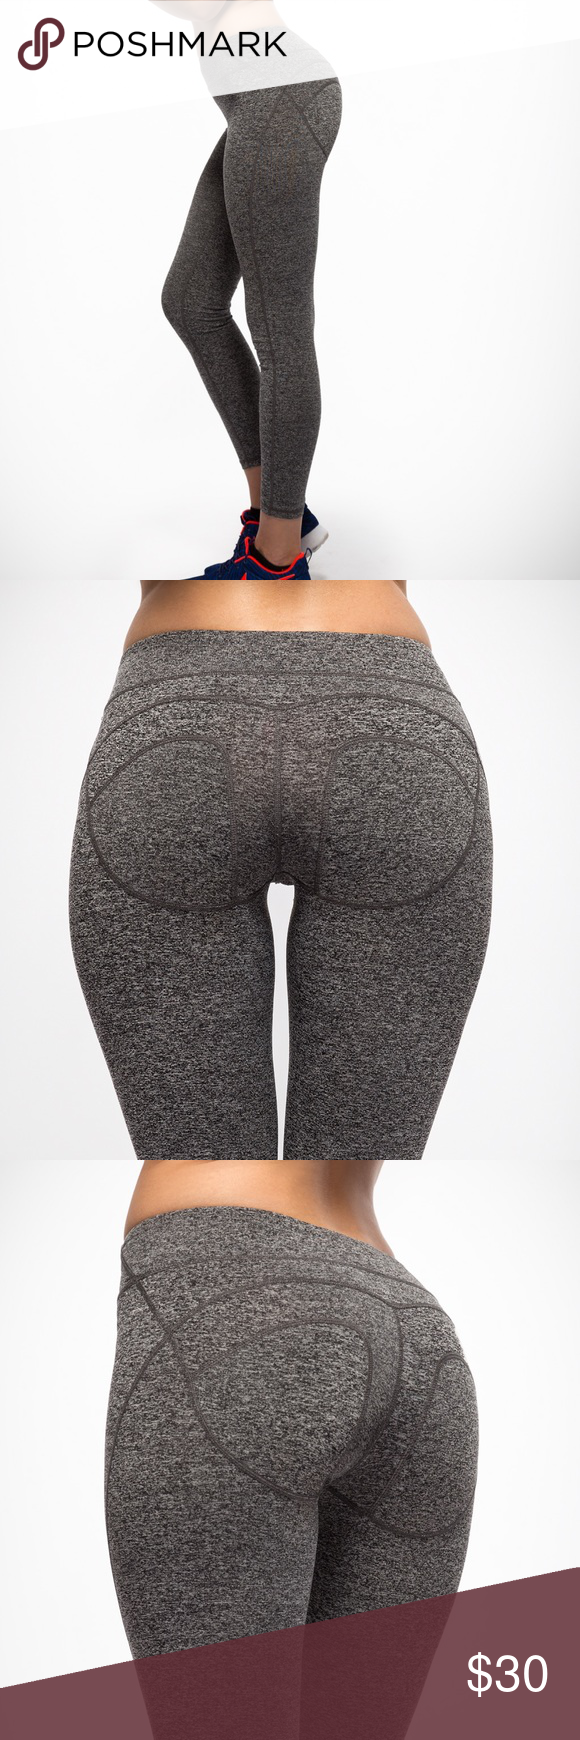 a50c97ca1fc1a Butt Lifting & Body Shaping Leggings Signature design that flattering for  your butt and slimming on